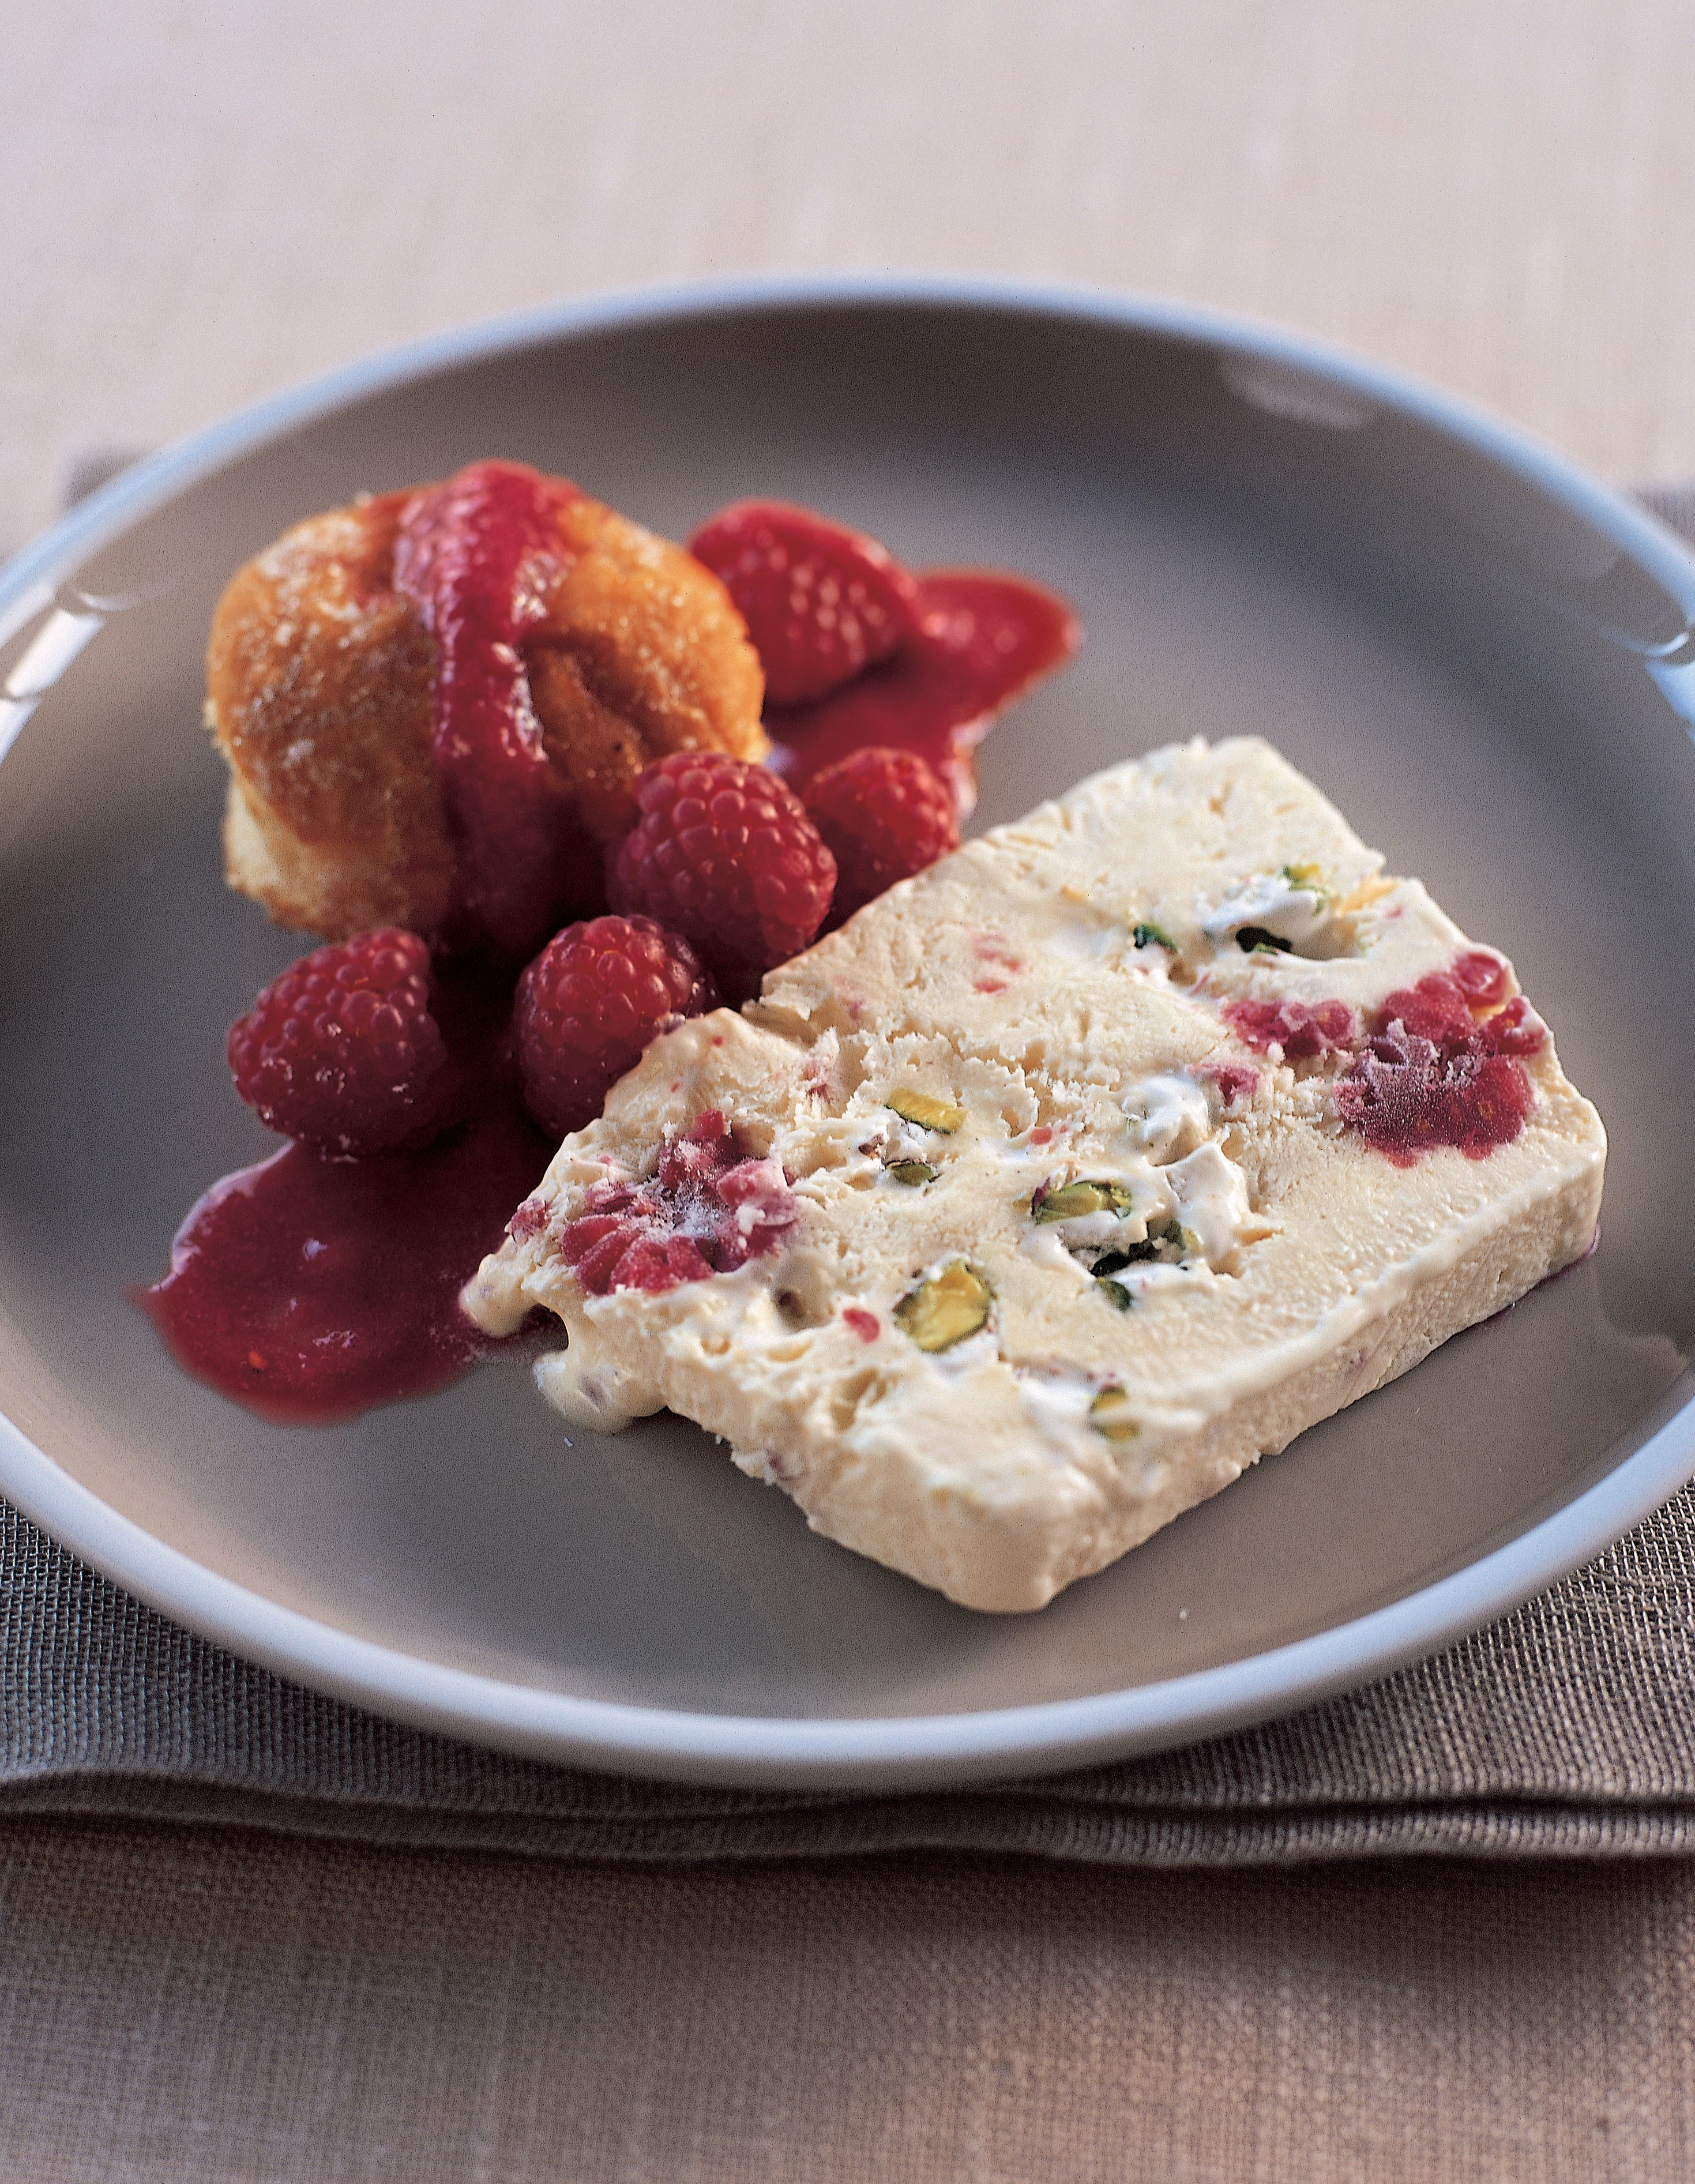 Raspberry and nougat semifreddo